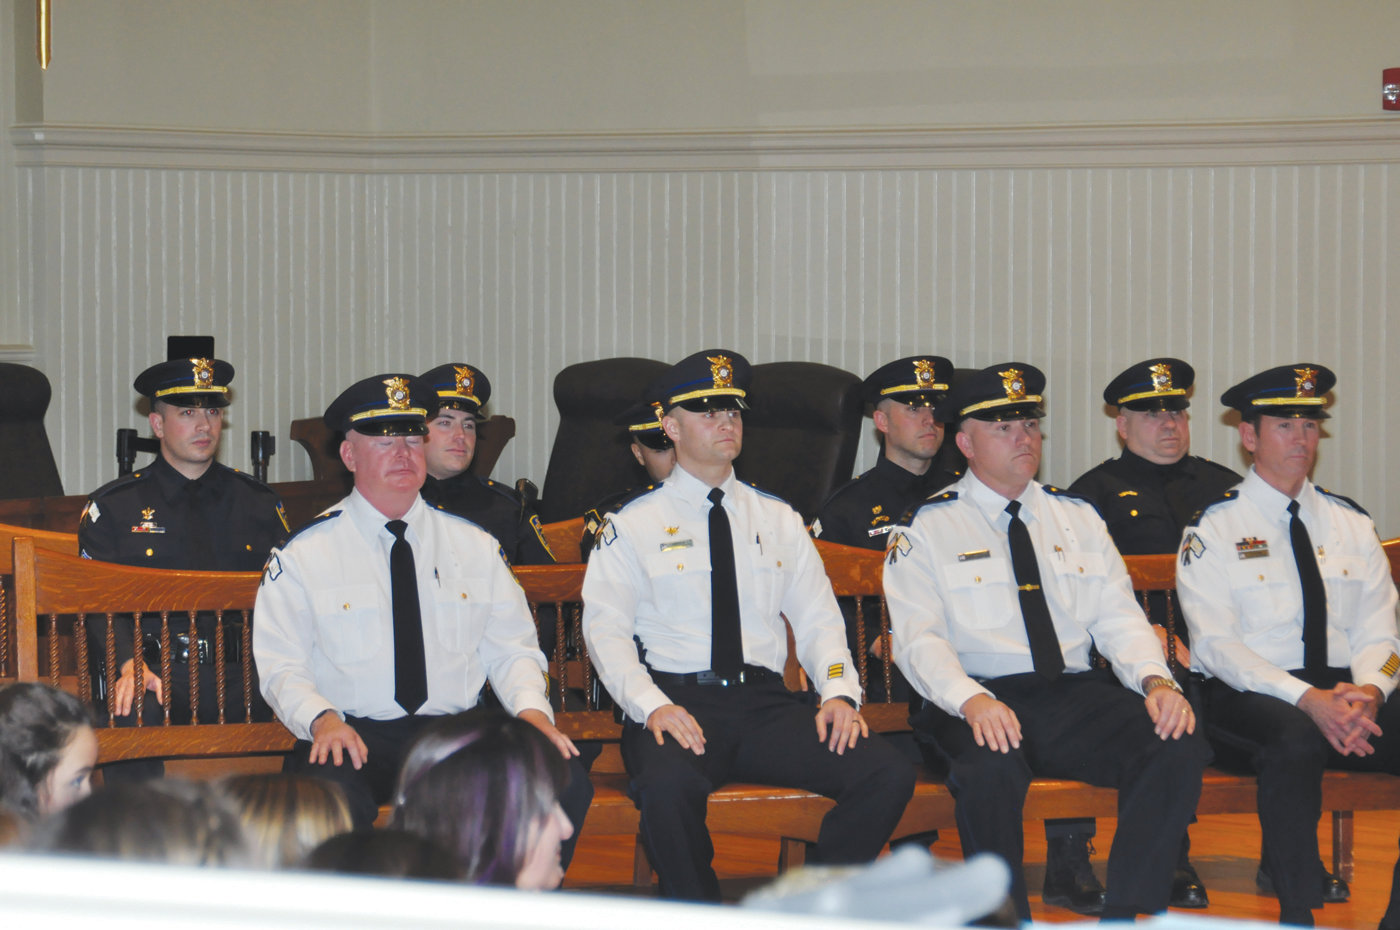 AT PROMOTION CEREMONY: During proceedings Tuesday at Warwick City Hall the follow offers were promoted (front row from right) Captain James Valkoun, Captain Scott Robillard, Lieutenant Daniel DiMaio and Lieutenant John Kelly; (back row from right) Sergeant Michael Walker, Sergeant Leo Tetreault, Sergeant Javier Cabreja, Sergeant Geoffrey Waldman and Sergeant Jason Brodeur.